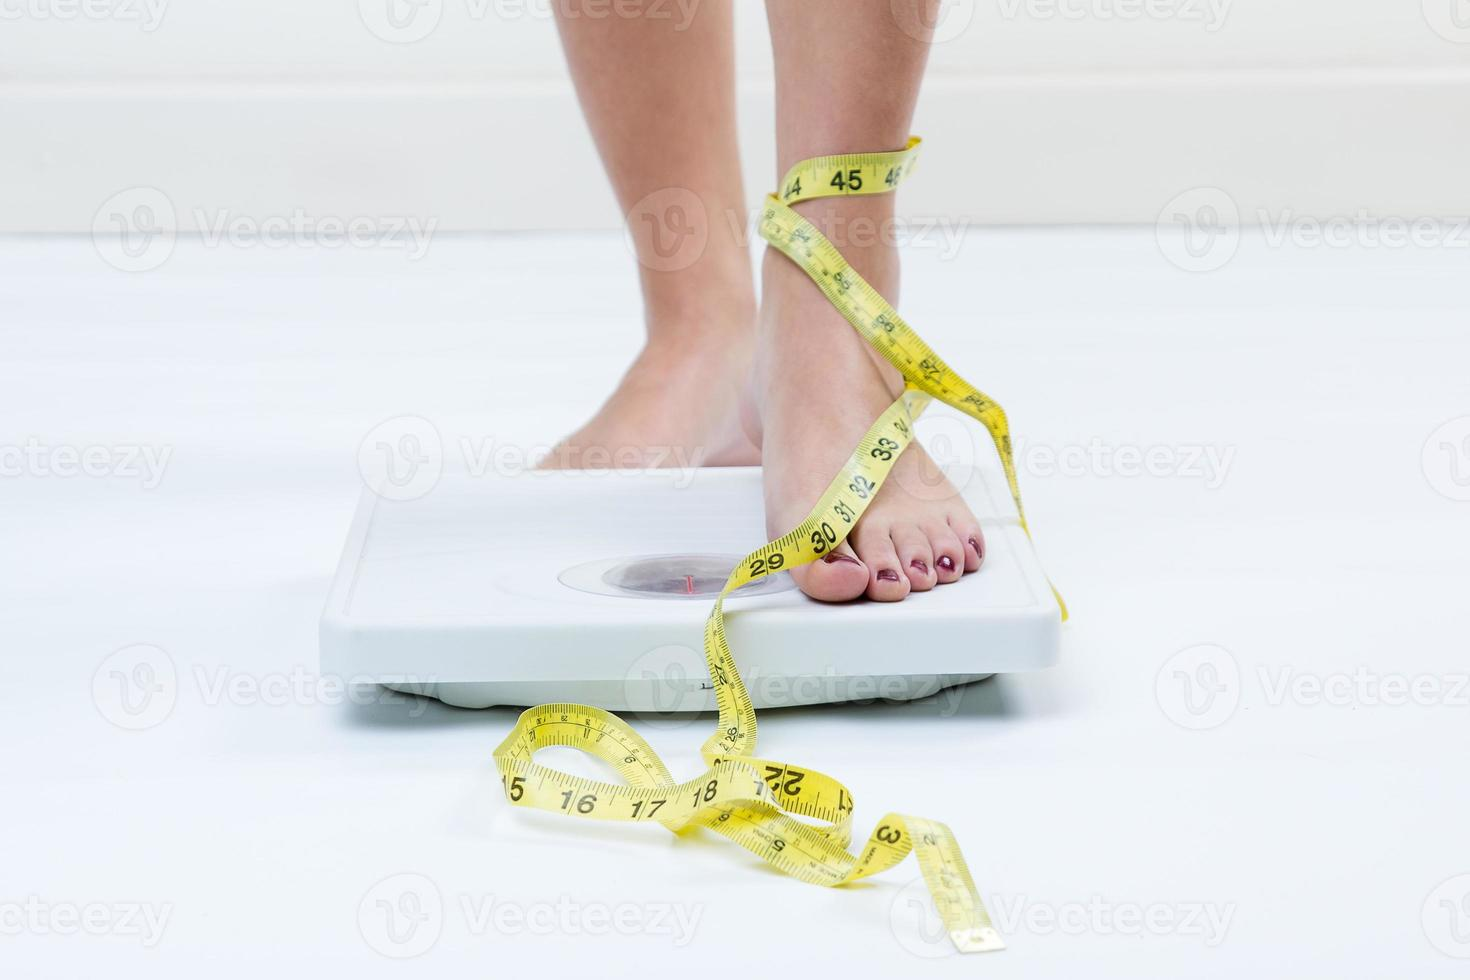 Female feet standing on a bathroom scales and tape measure photo